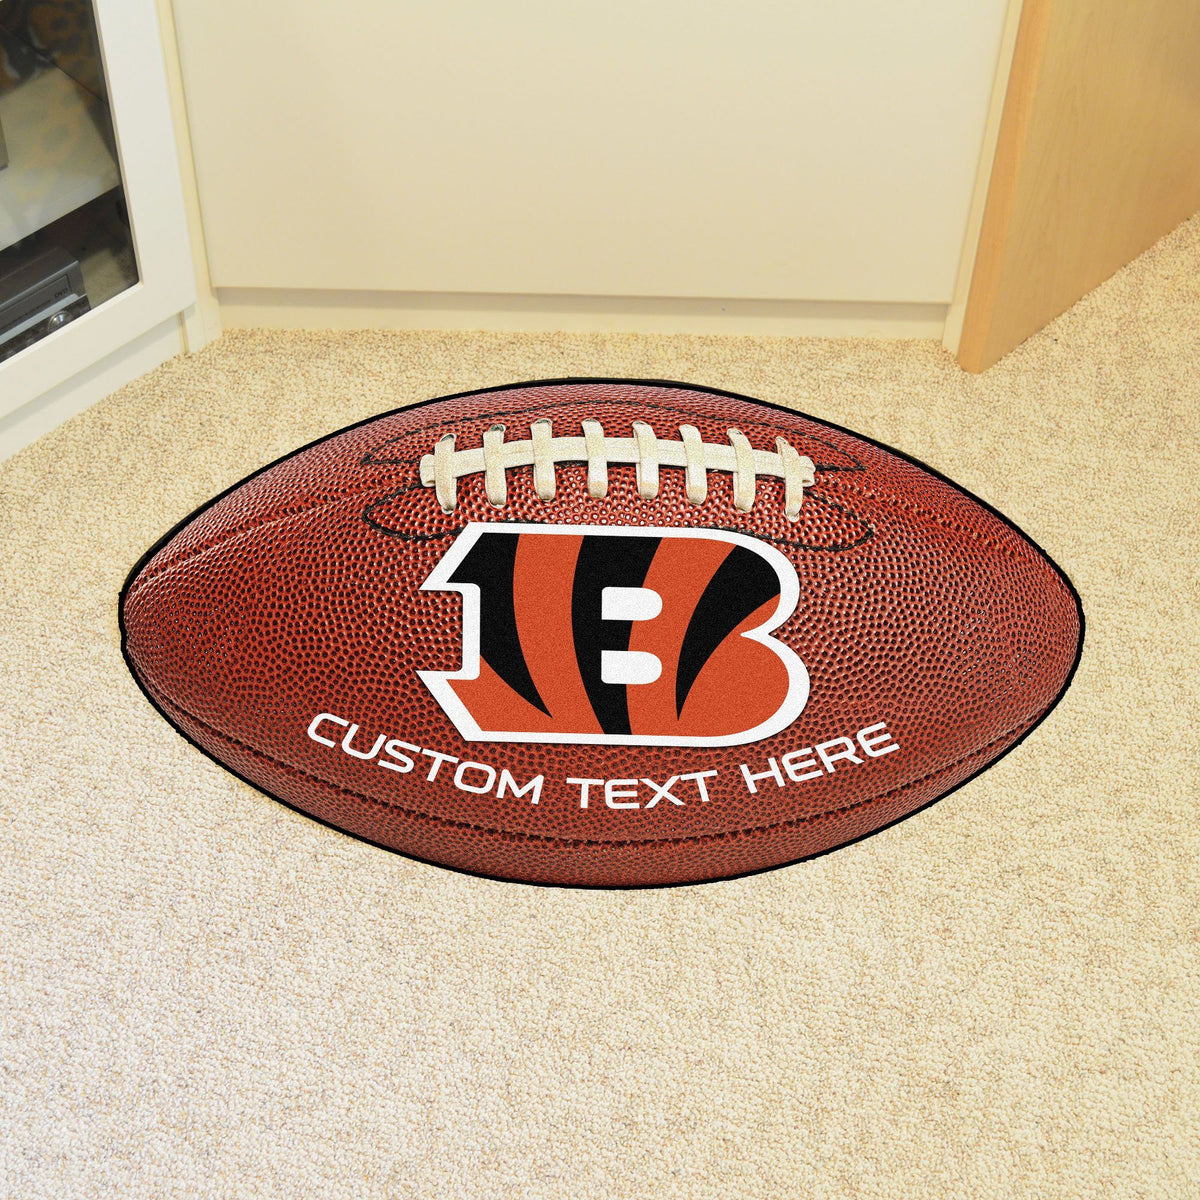 NFL Personalized Football Mat Personalized Football Mat Fan Mats Cincinnati Bengals